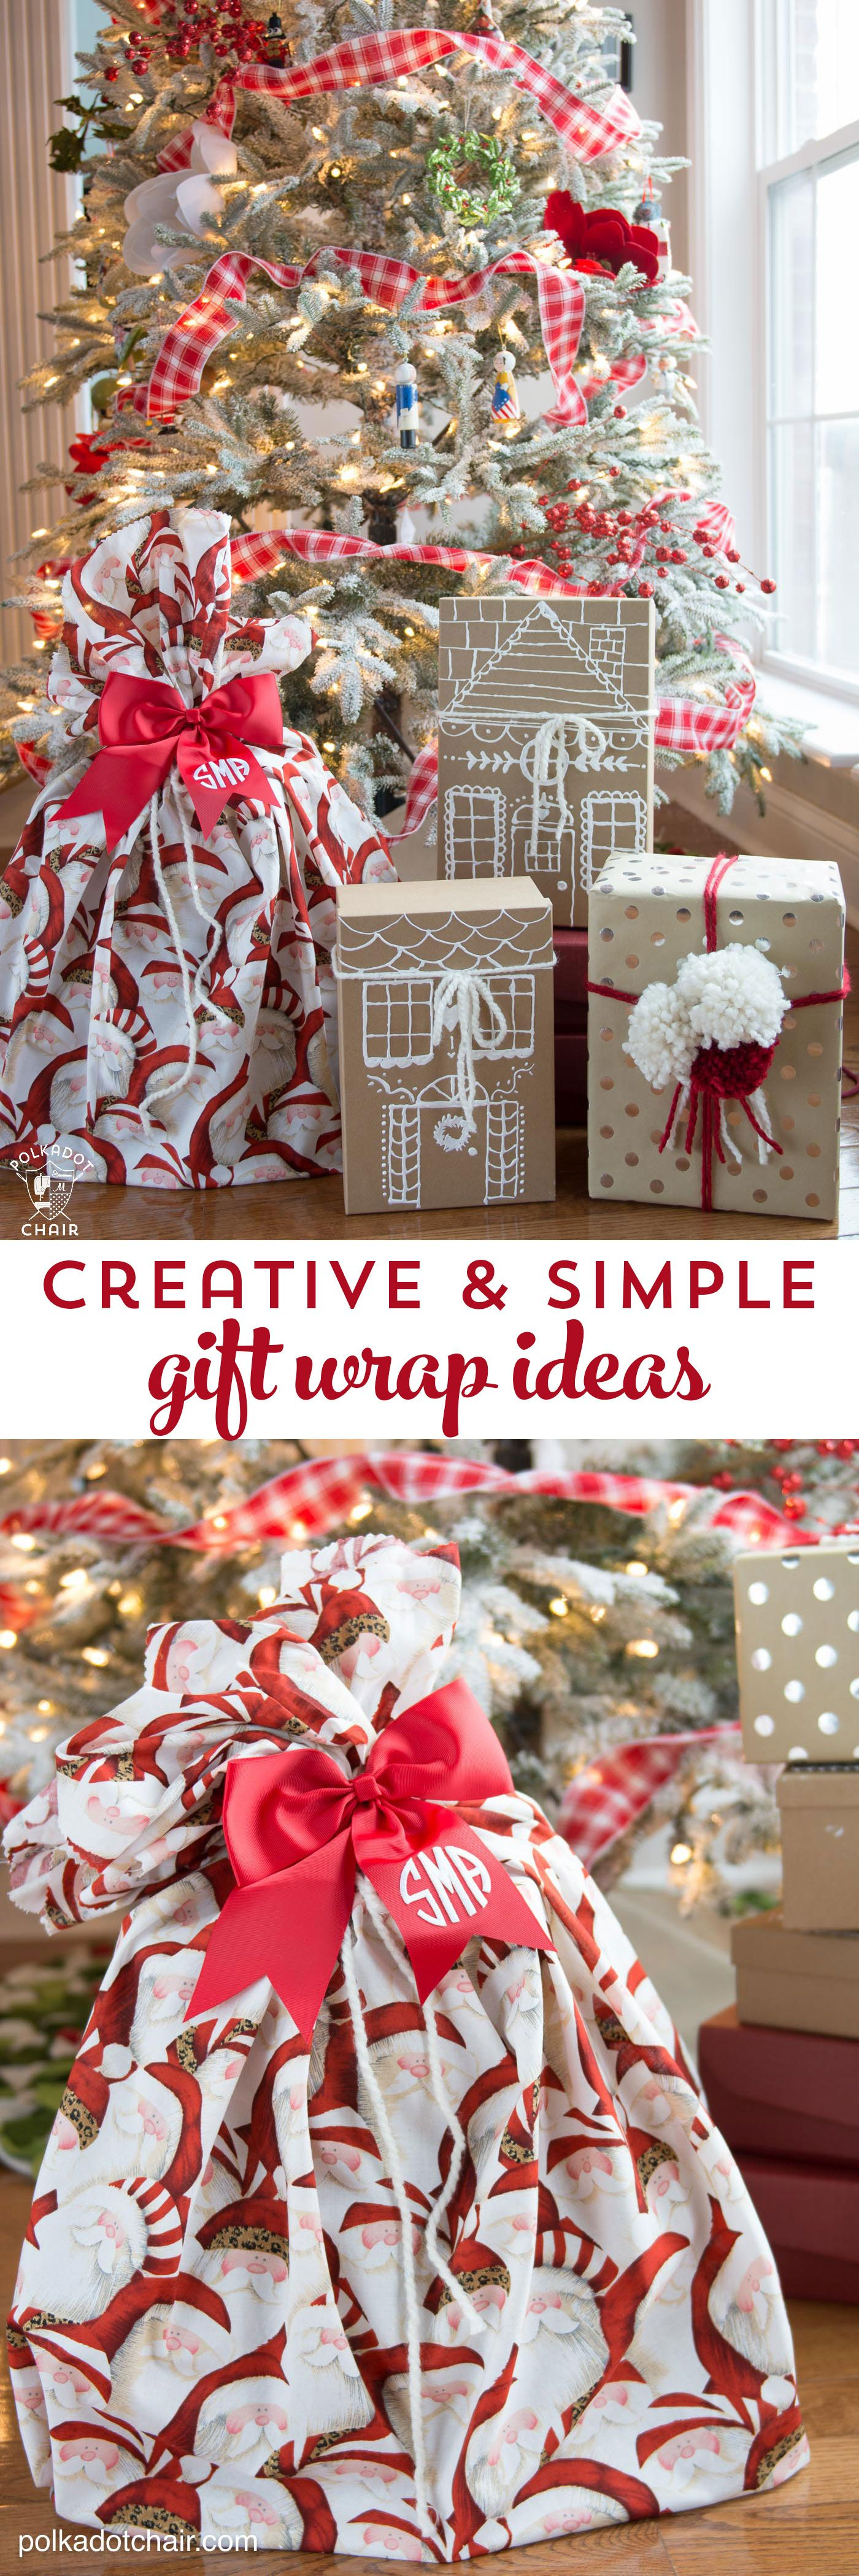 3 Simple And Creative Gift Wrap Ideas The Polka Dot Chair Creative Gift Wrapping Simple Gift Wrapping Gift Wrapping